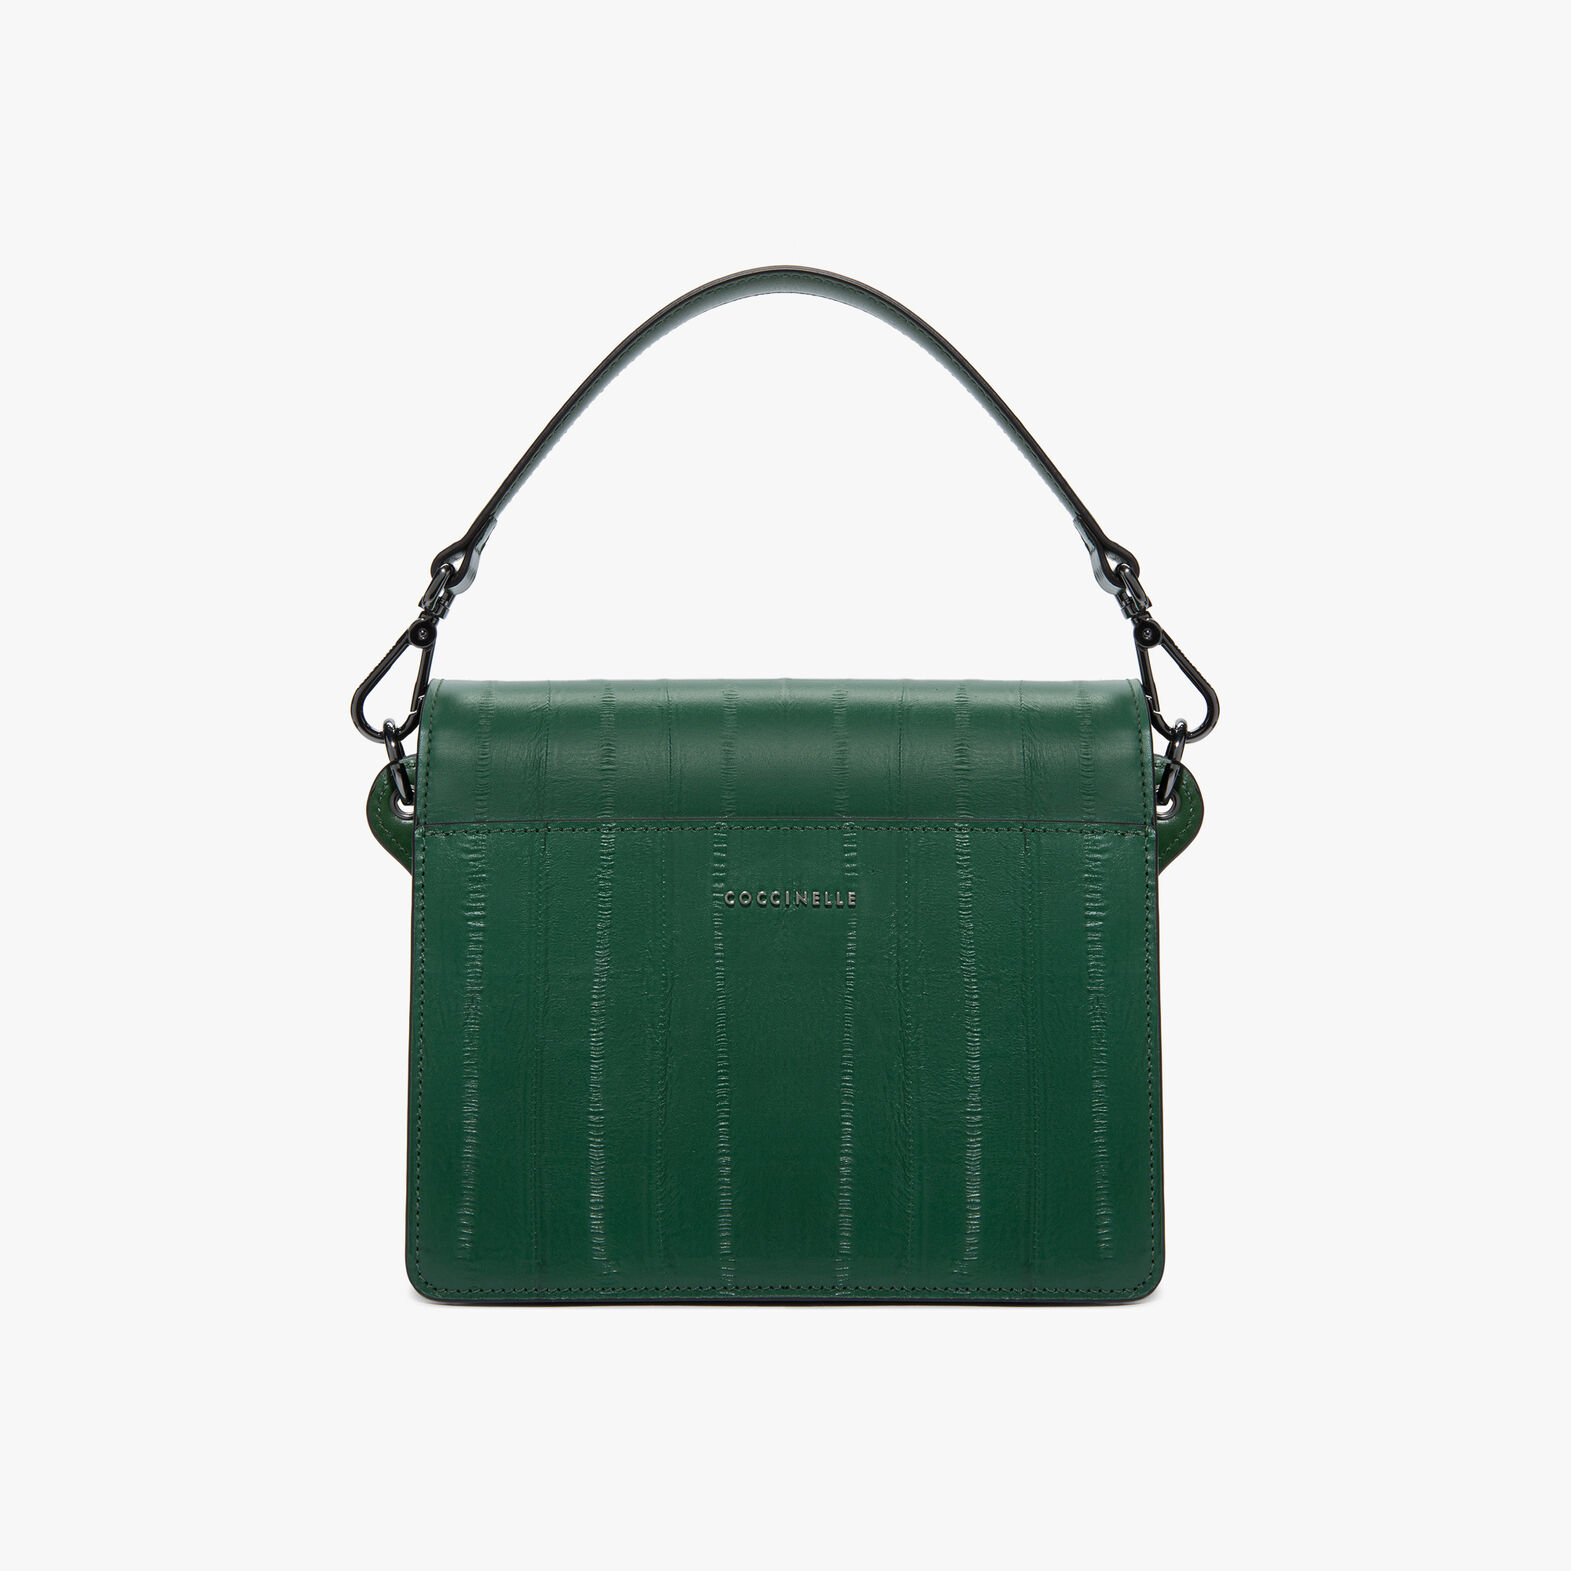 Ambrine eel-print leather bag with a single strap